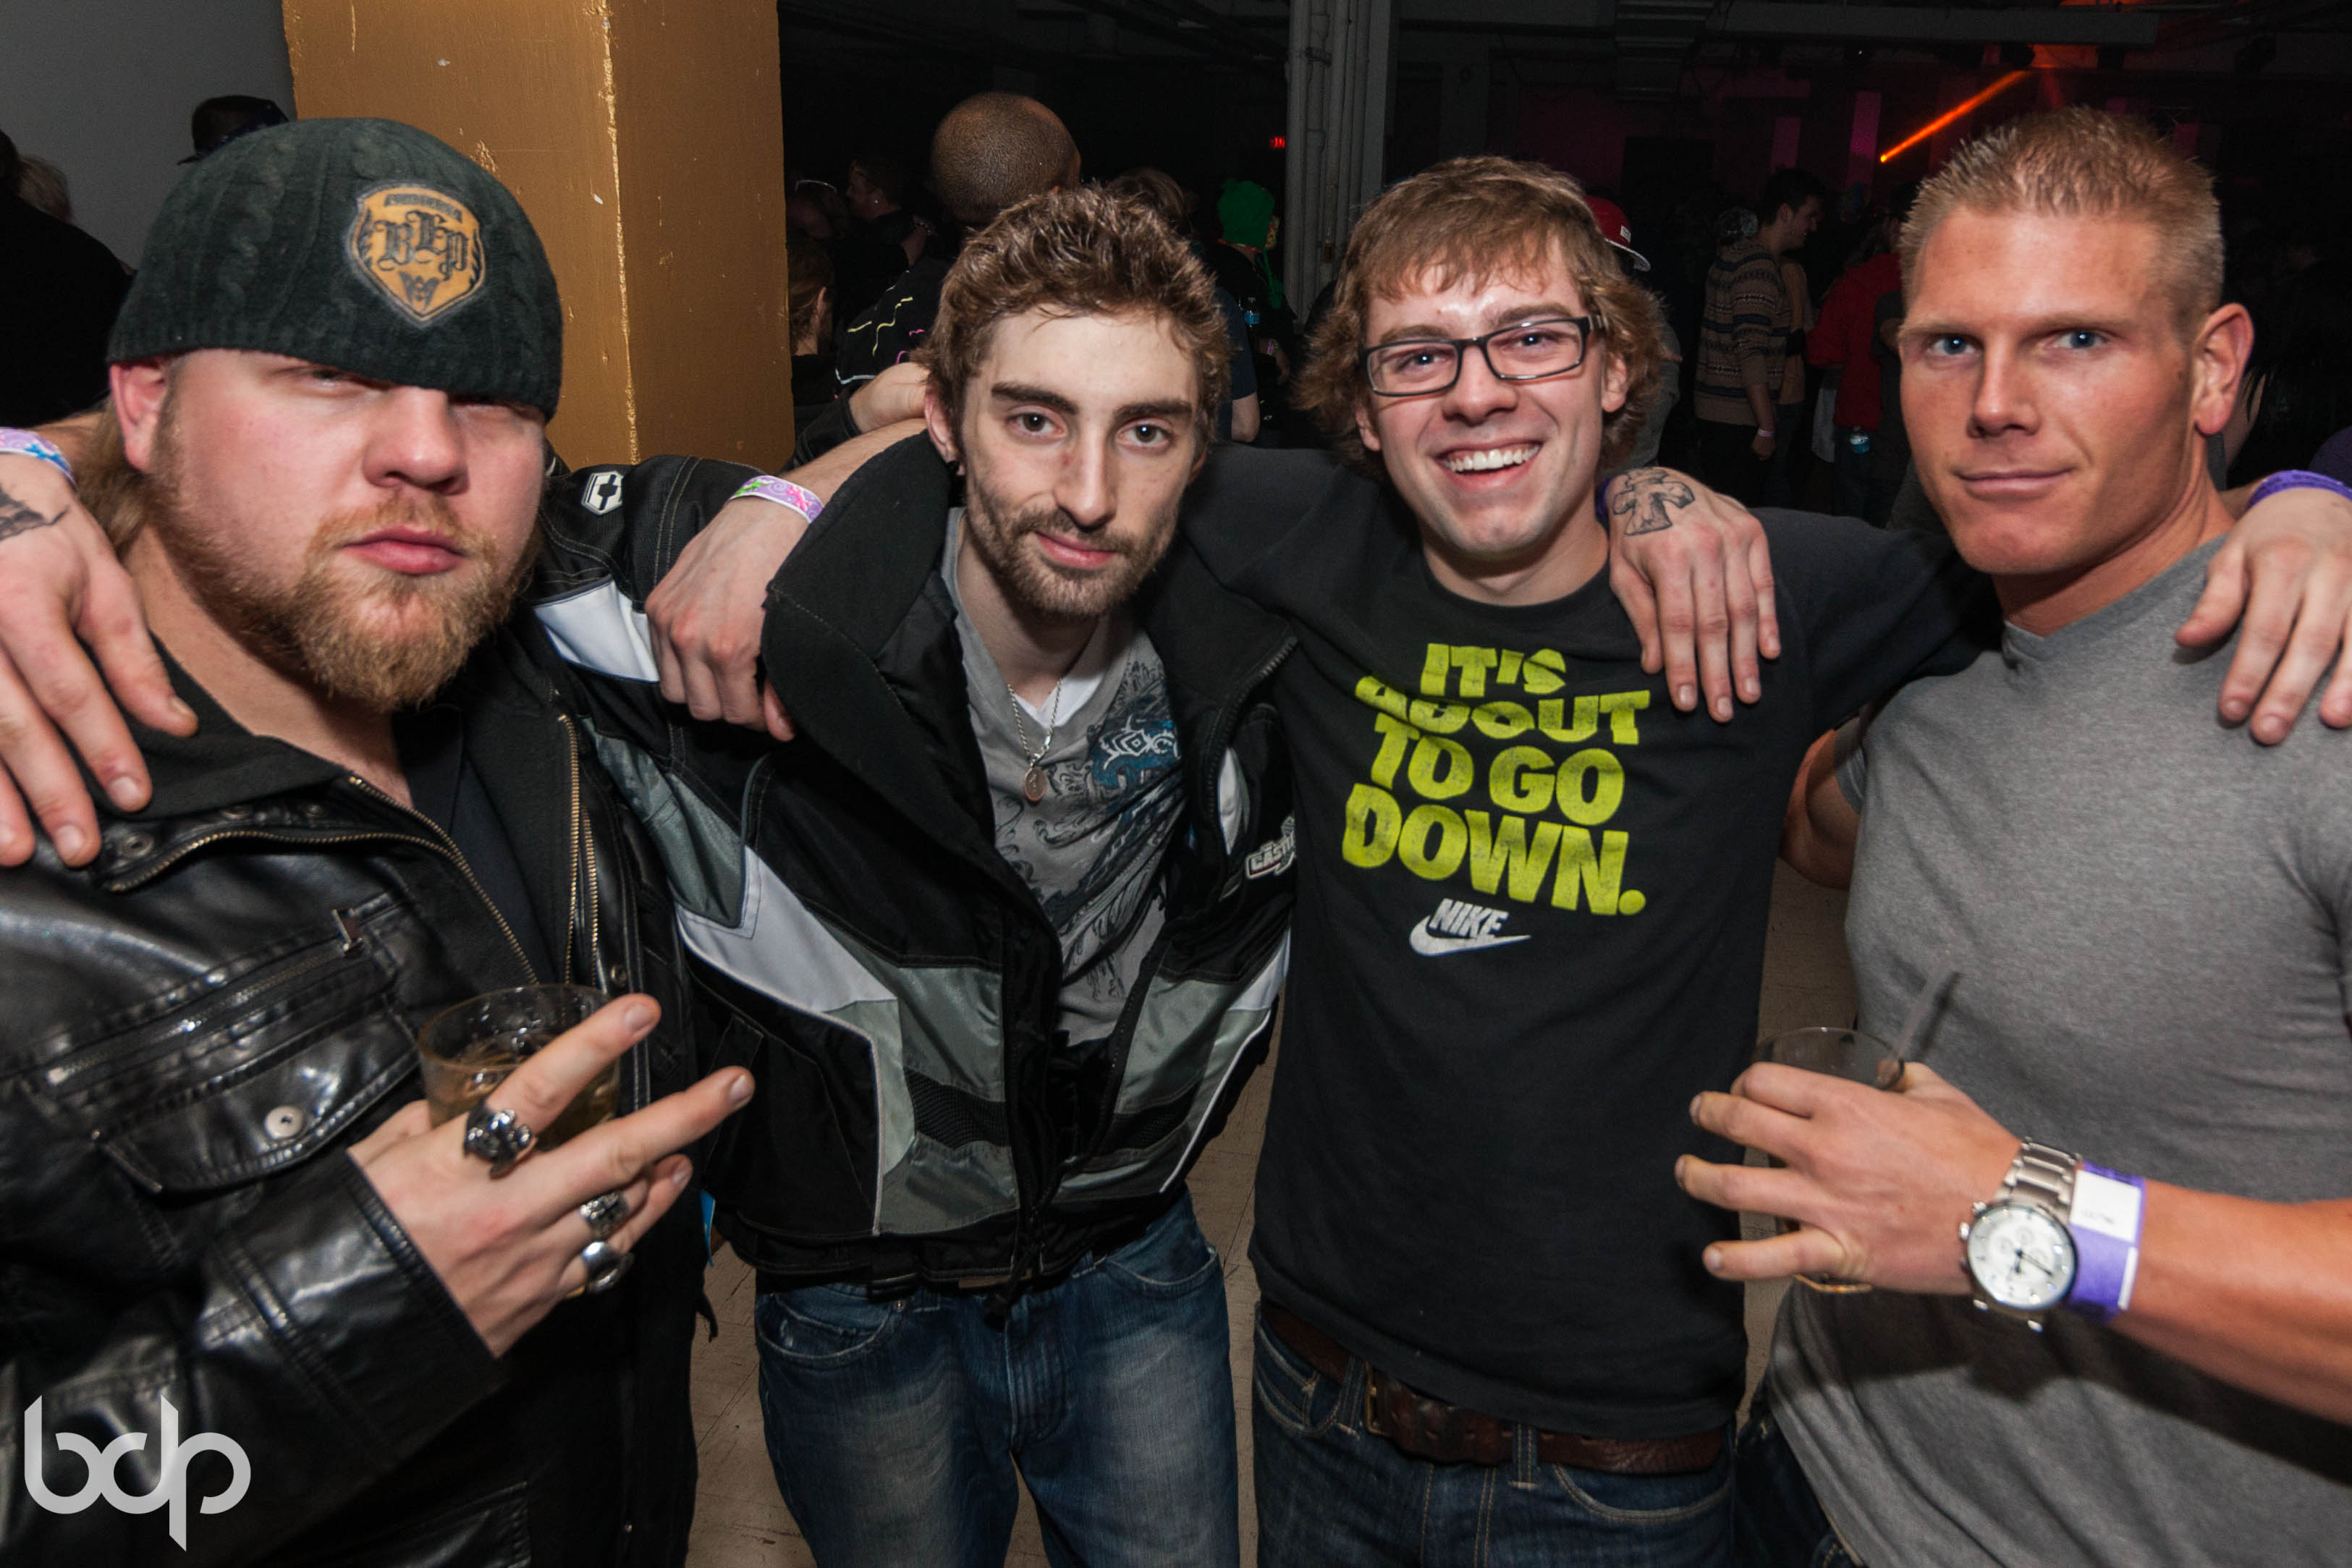 Bass Riot ft. DjAhsta, Cyberoptics, Jphelps at The Loft 122113 BDP-32.jpg